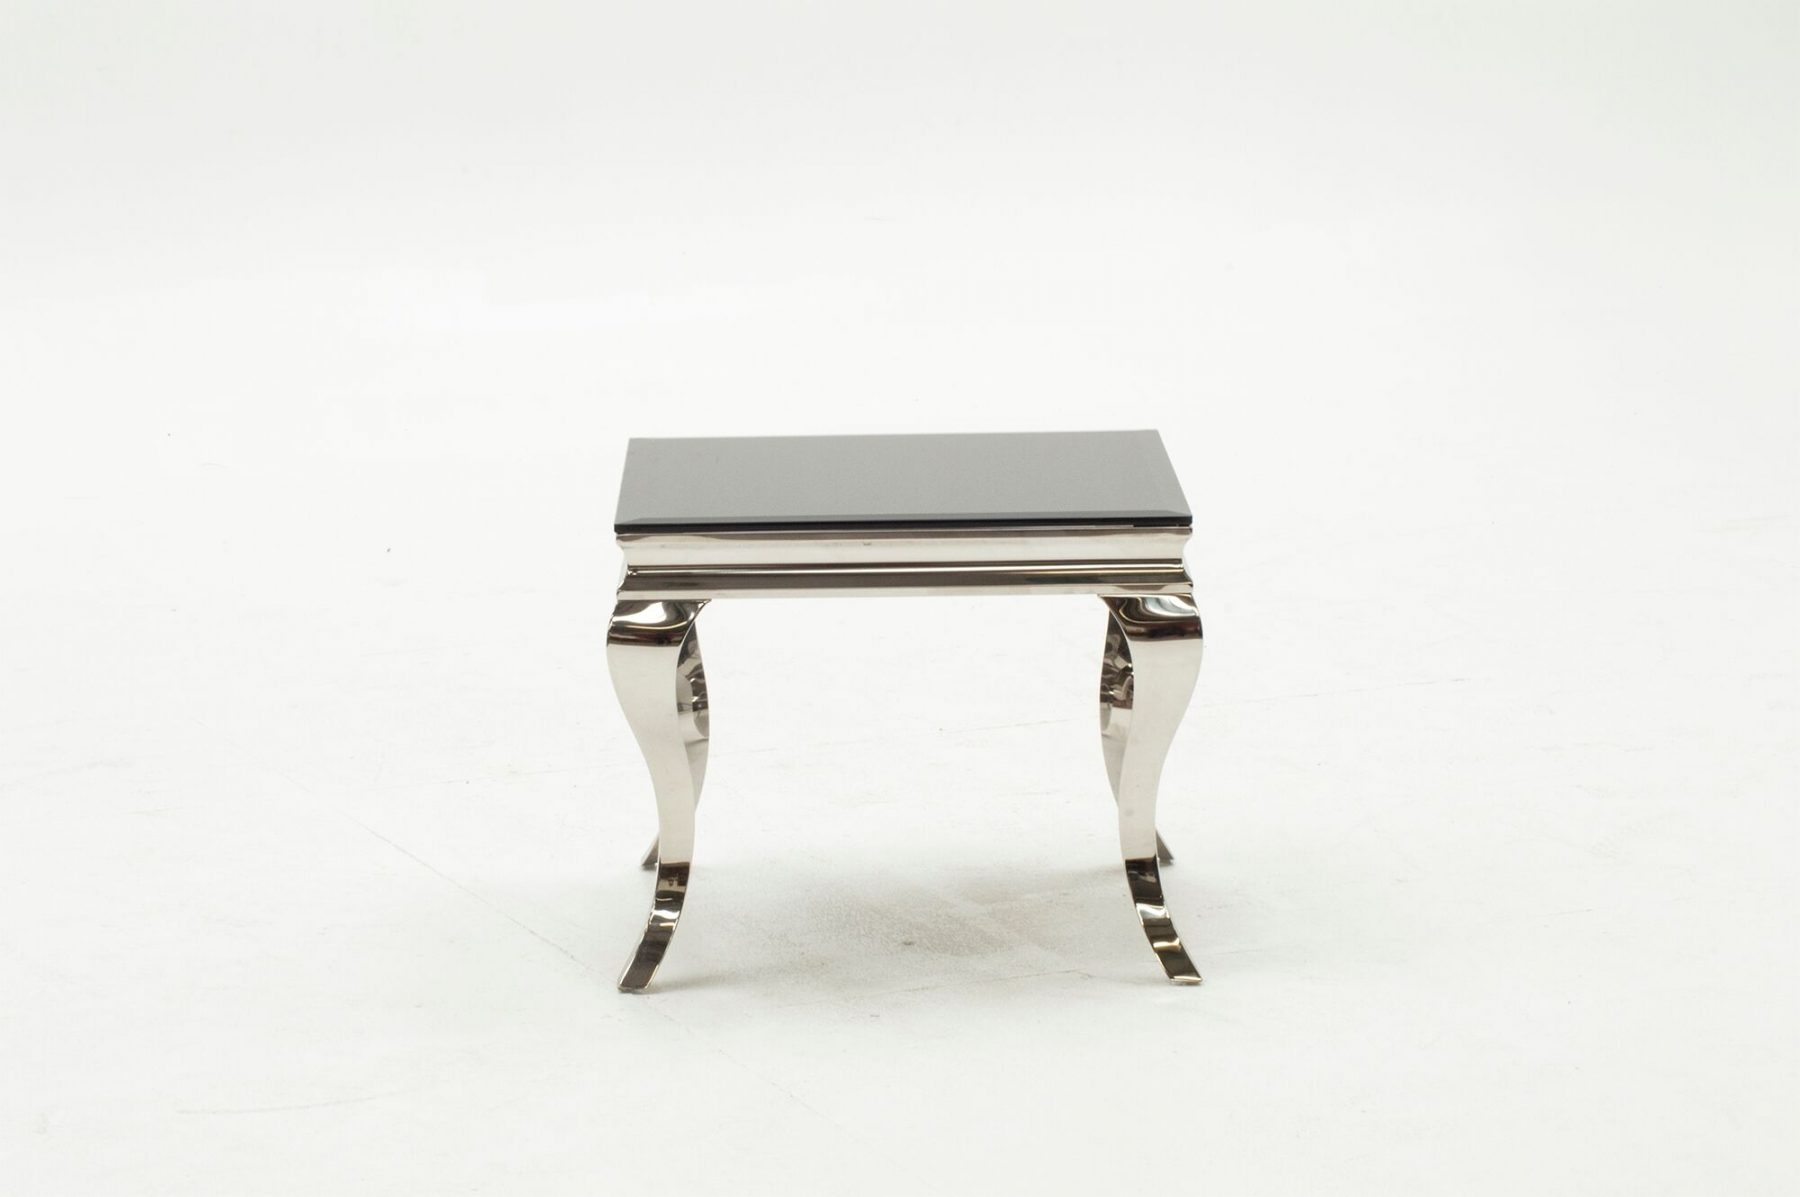 Louis Black Glass & Stainless Steel Lamp Table